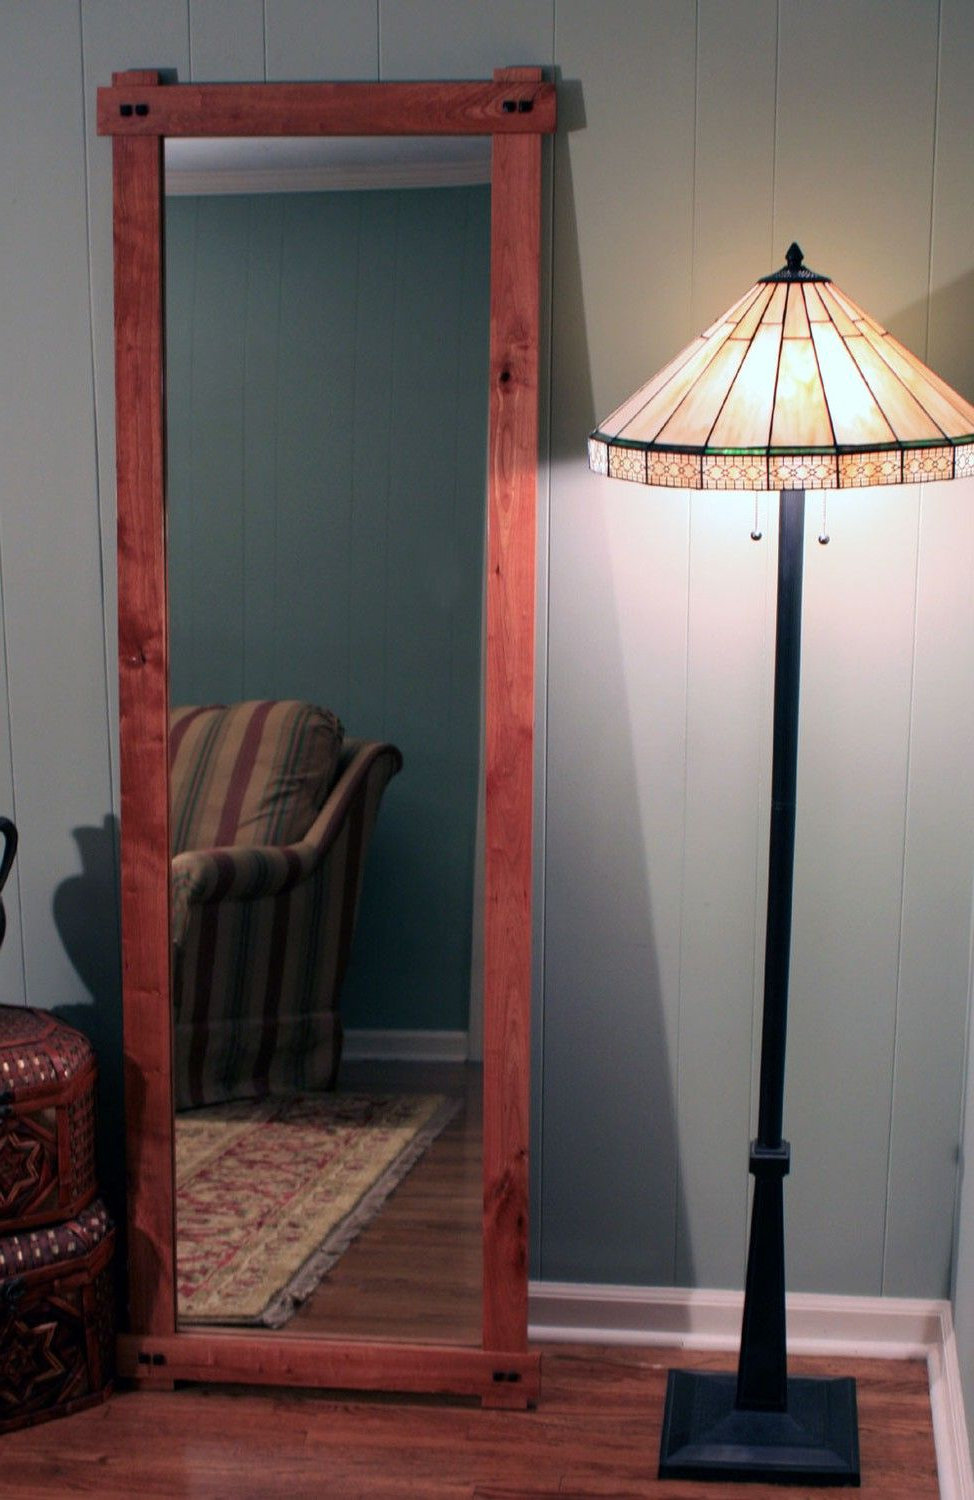 Most Popular Rustic Cherry Full Length Or Floor Mirror, Gloss Clear Coat Finish Intended For Cherry Wall Mirrors (View 9 of 20)